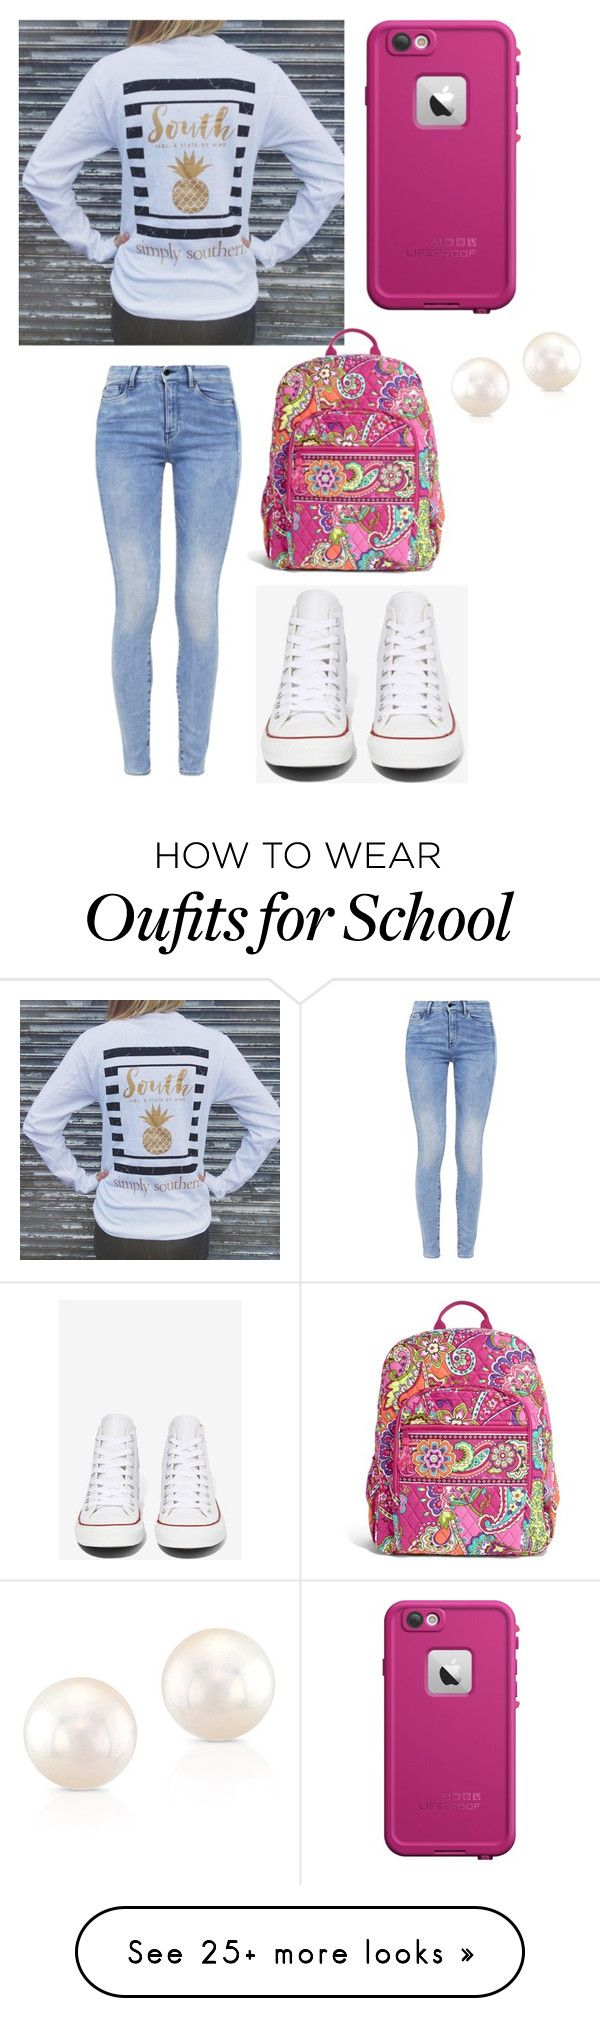 """School"" by mckinley2004 on Polyvore featuring G-Star, Converse, LifeProof and Vera Bradley"